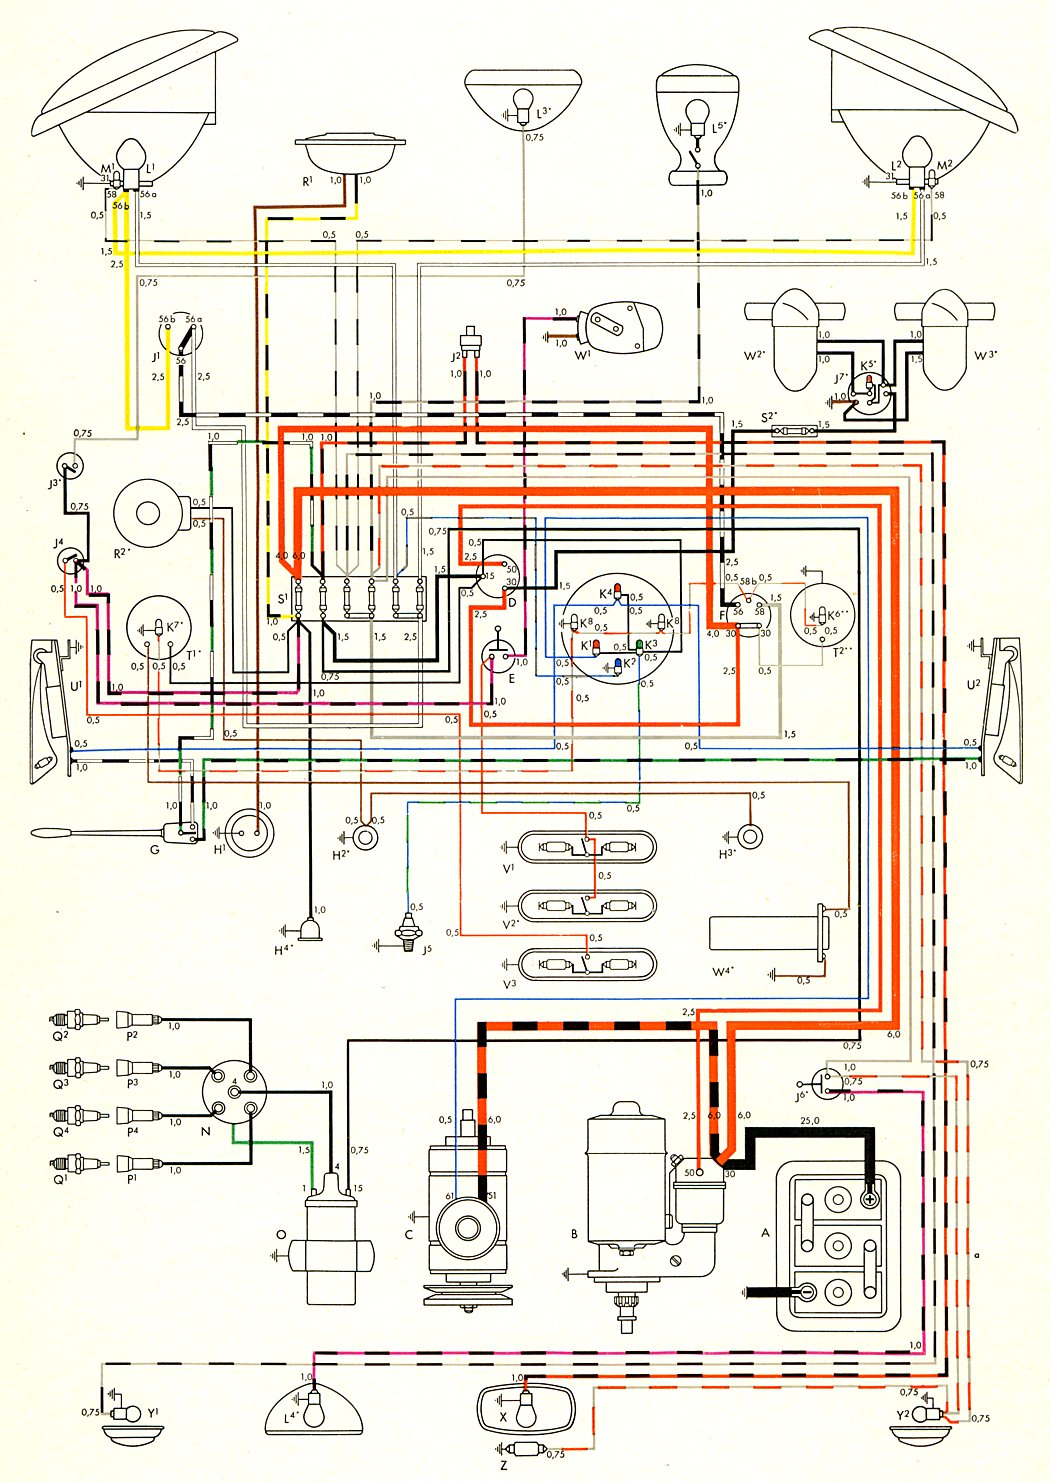 bus_nov57 thesamba com type 2 wiring diagrams 1957 vw beetle wiring diagram at bayanpartner.co